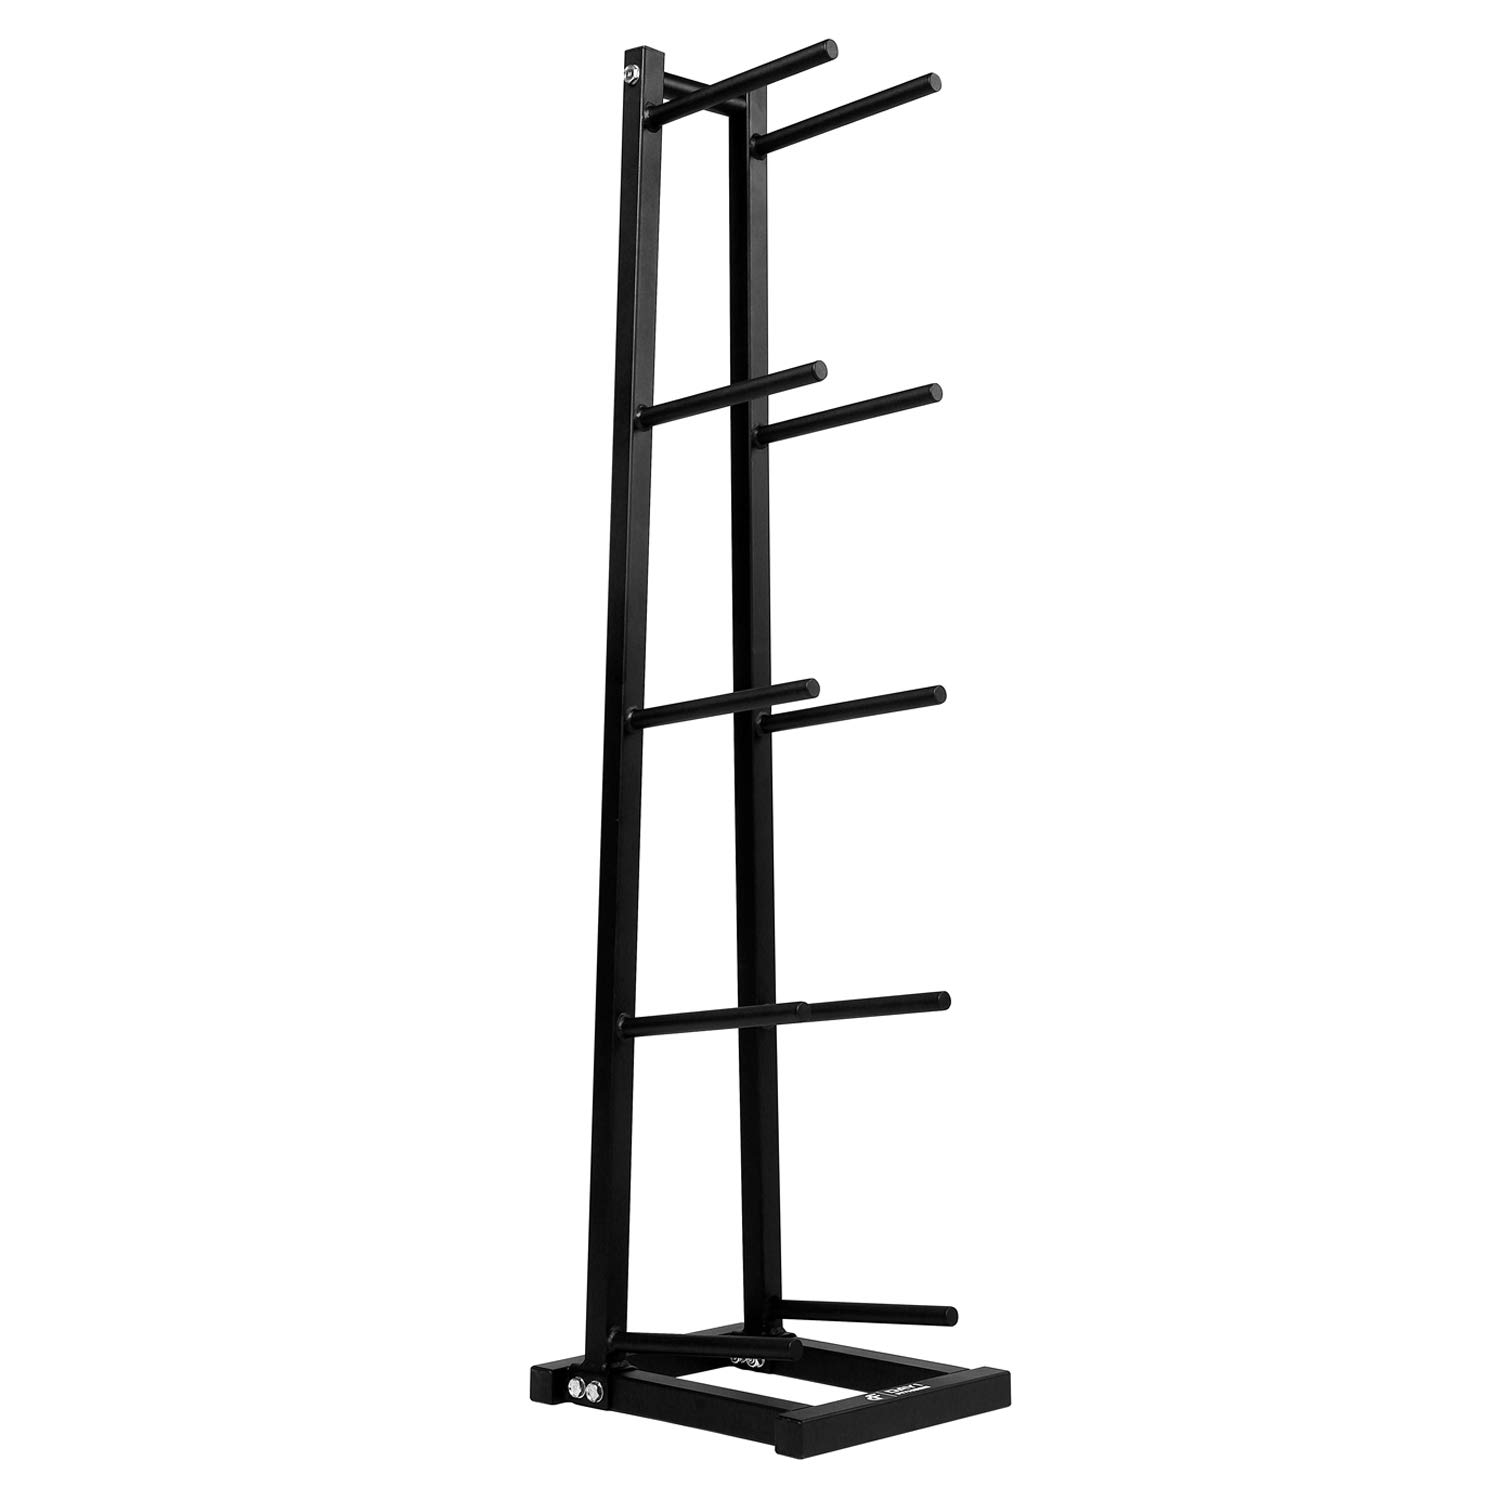 Day 1 Fitness 5-Tier Medicine Ball Storage Rack, Steel - Narrow, Vertical Exercise Ball Organizer for 5 Weighted Fitness Balls - Easy-to-Assemble, Sturdy Med Ball Tree for Home and Professional Gyms